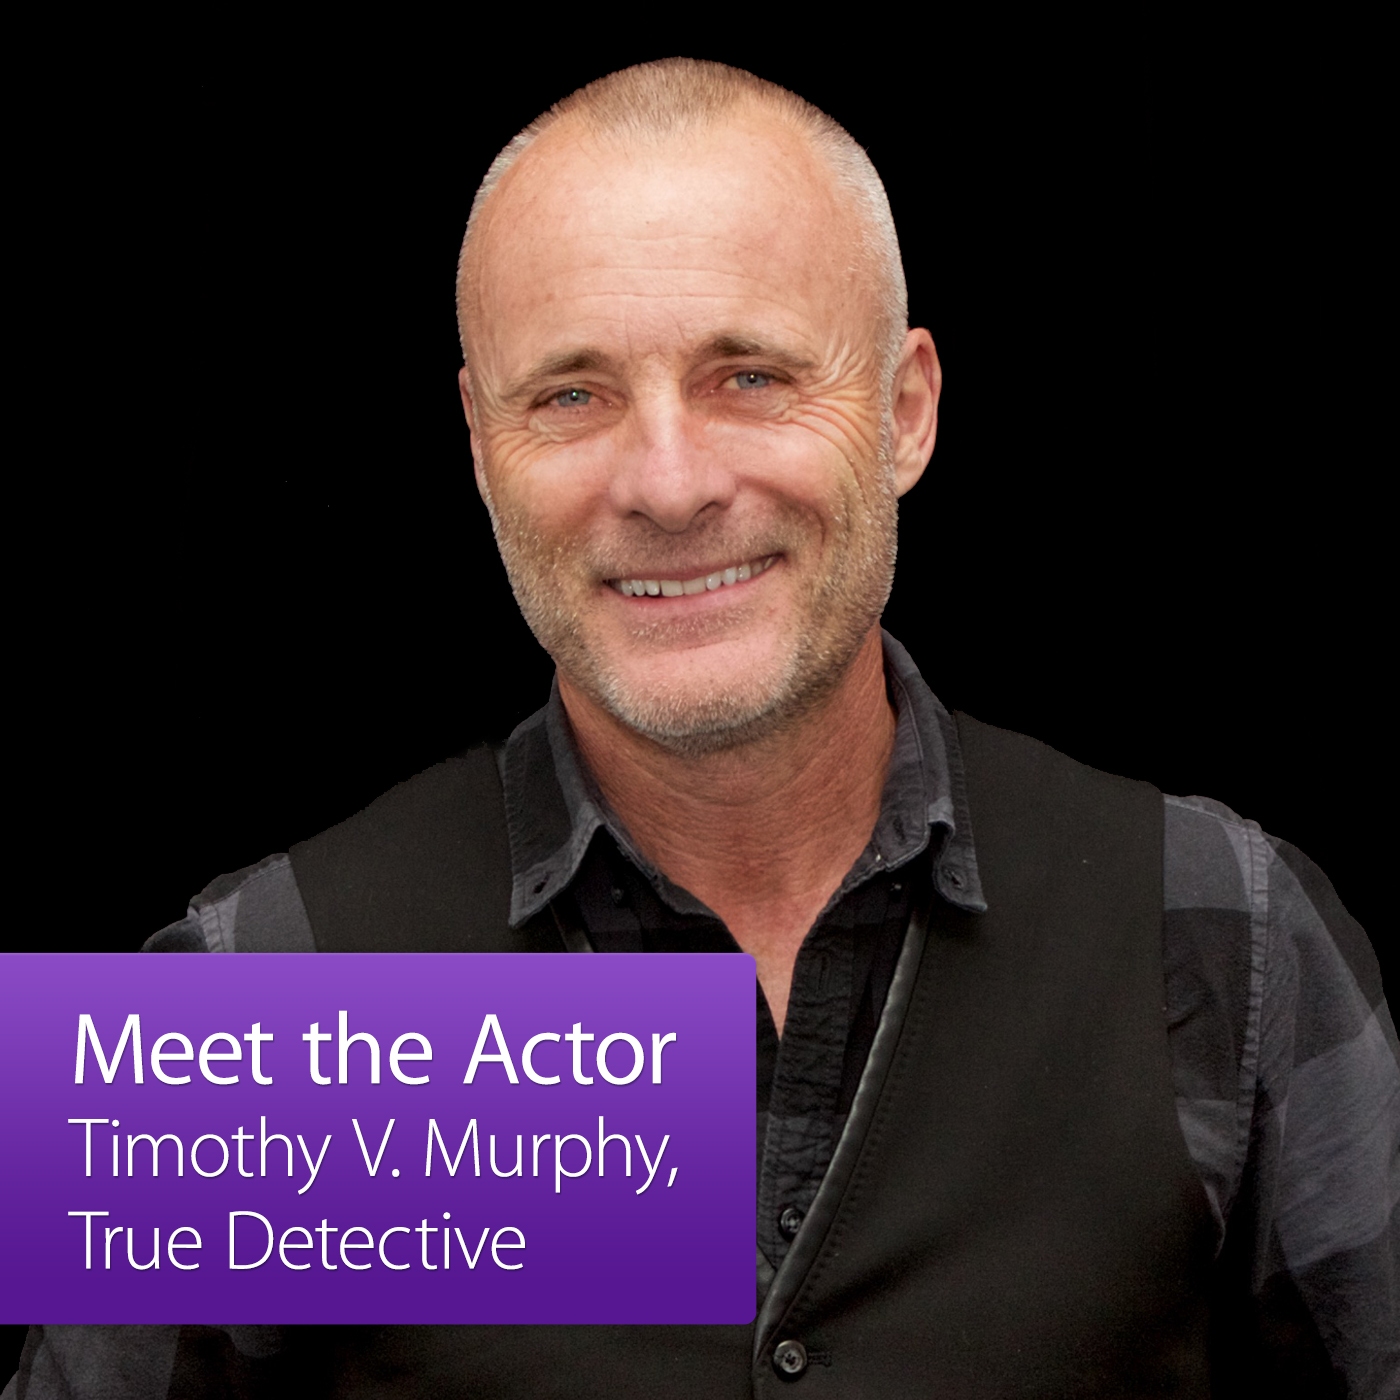 Timothy V. Murphy: Meet the Actor